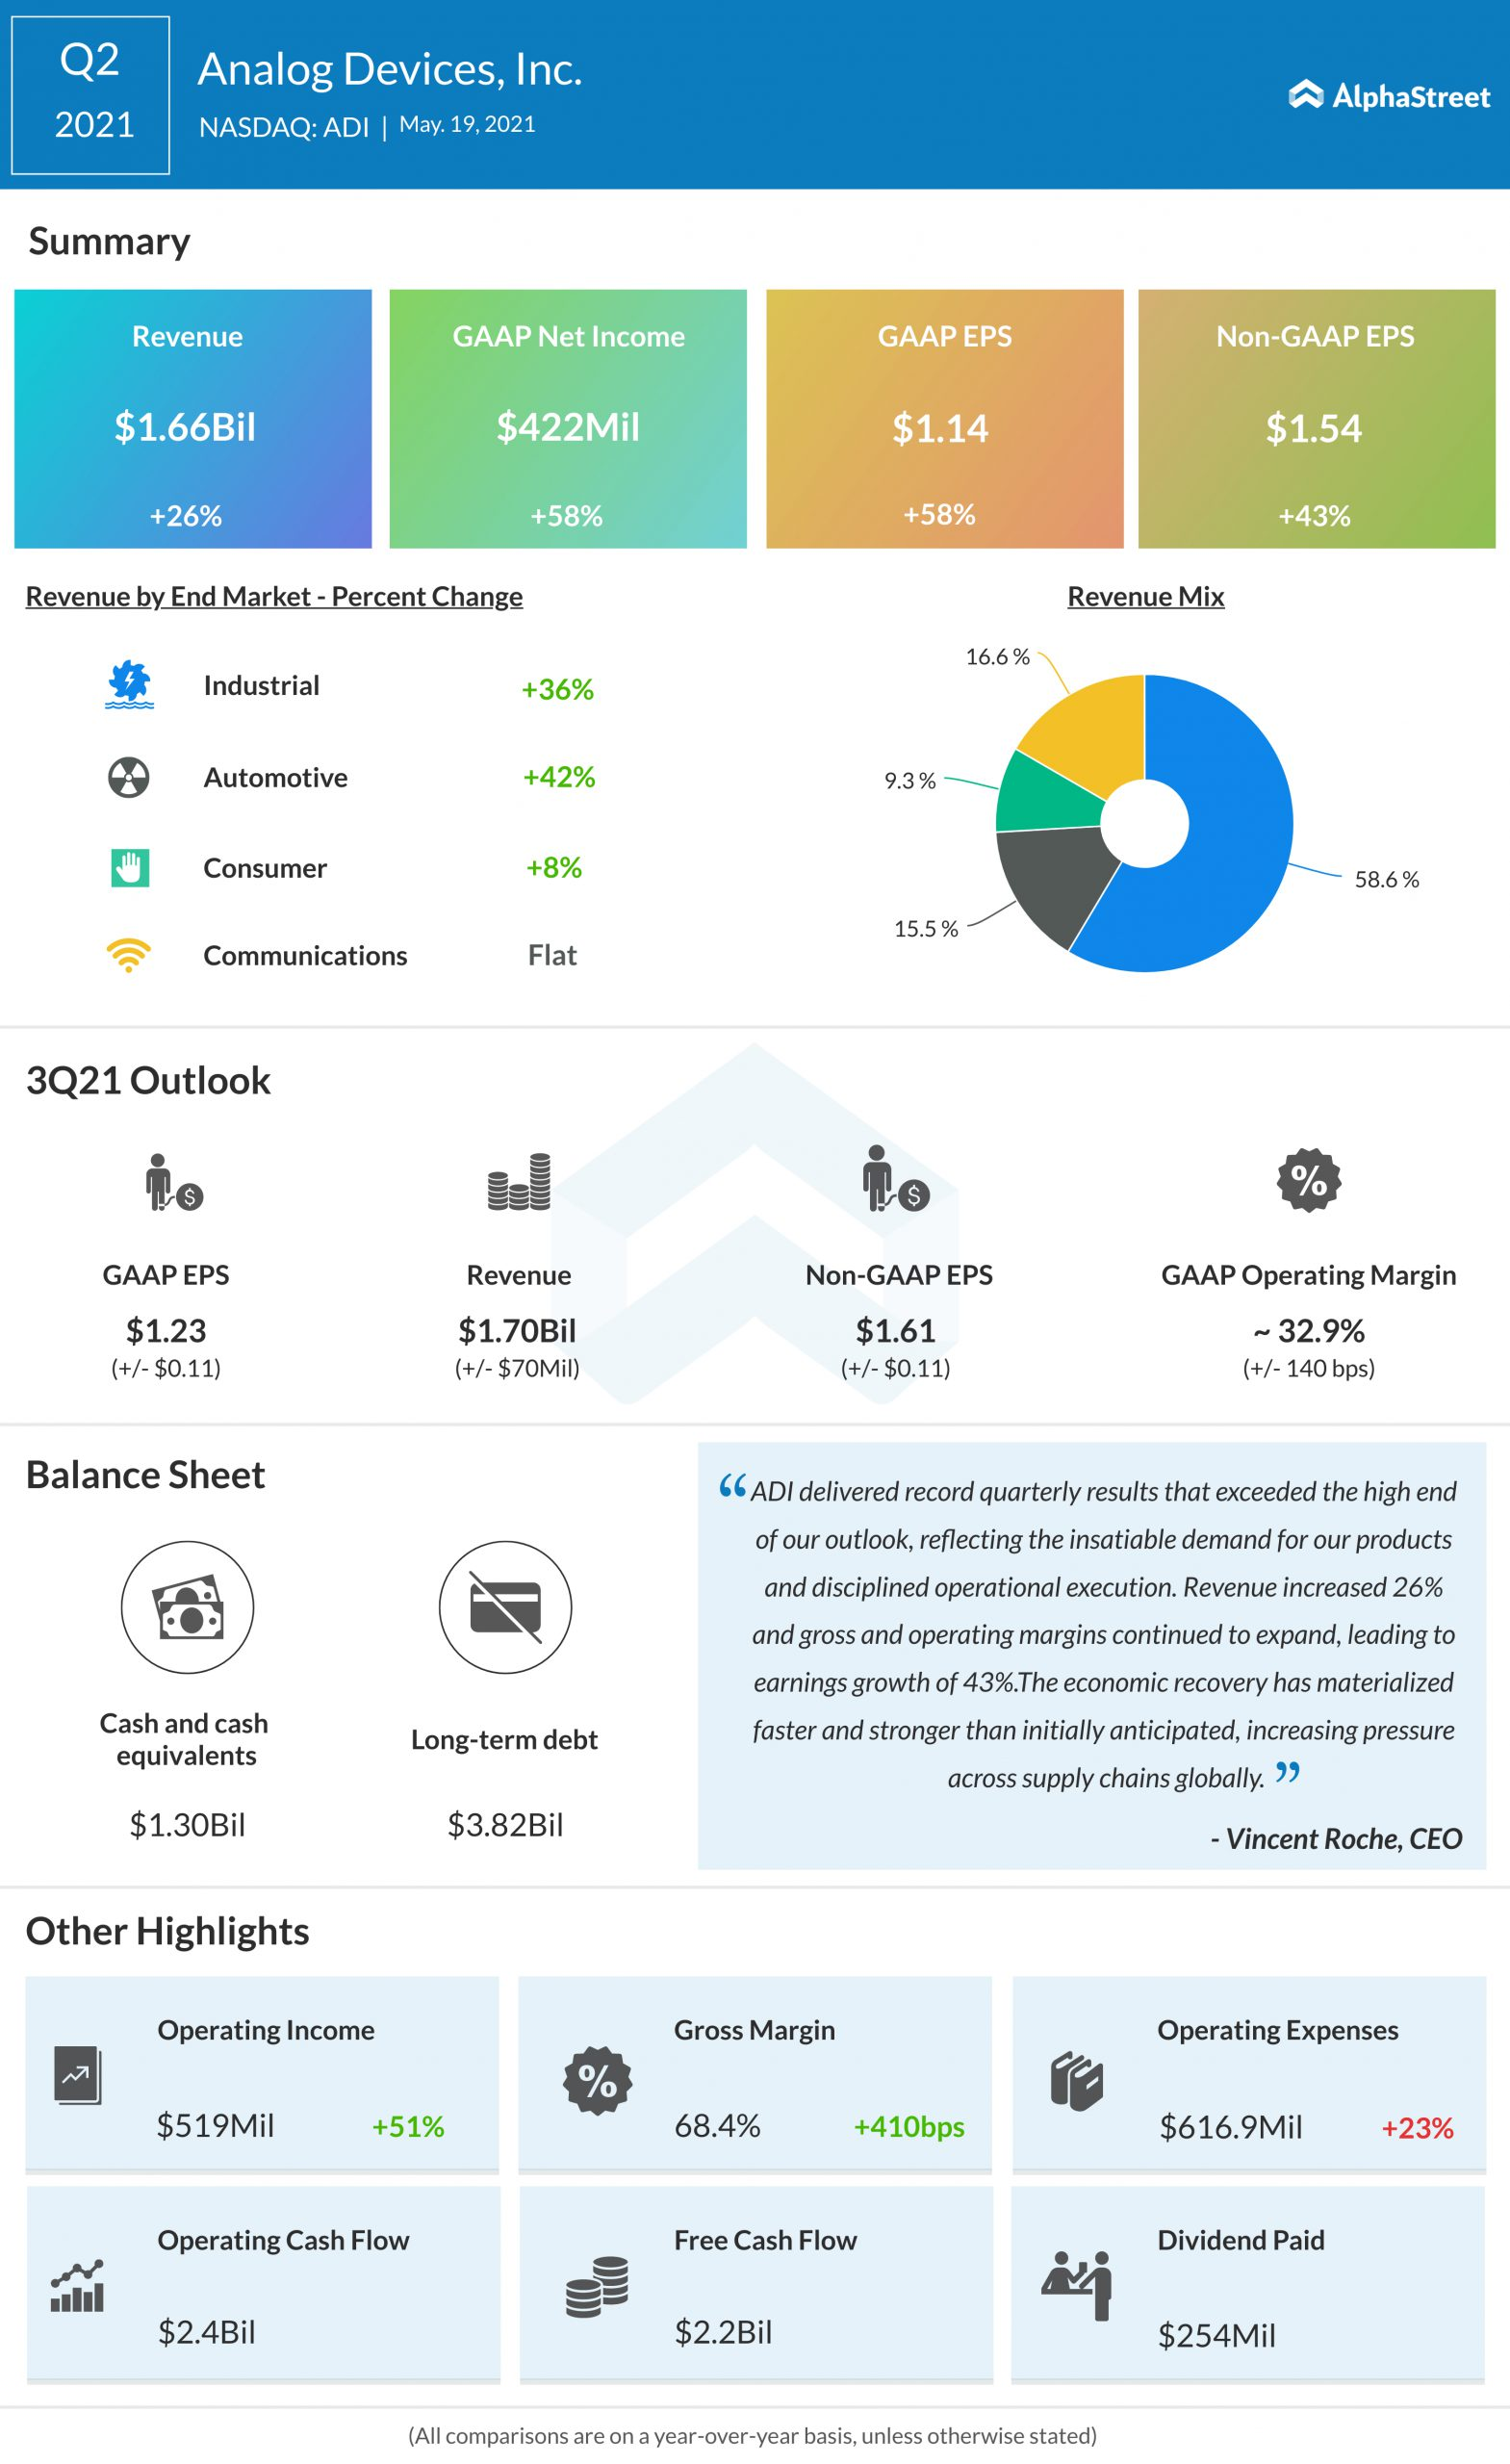 Analog Devices Q2 2021 earnings infographic